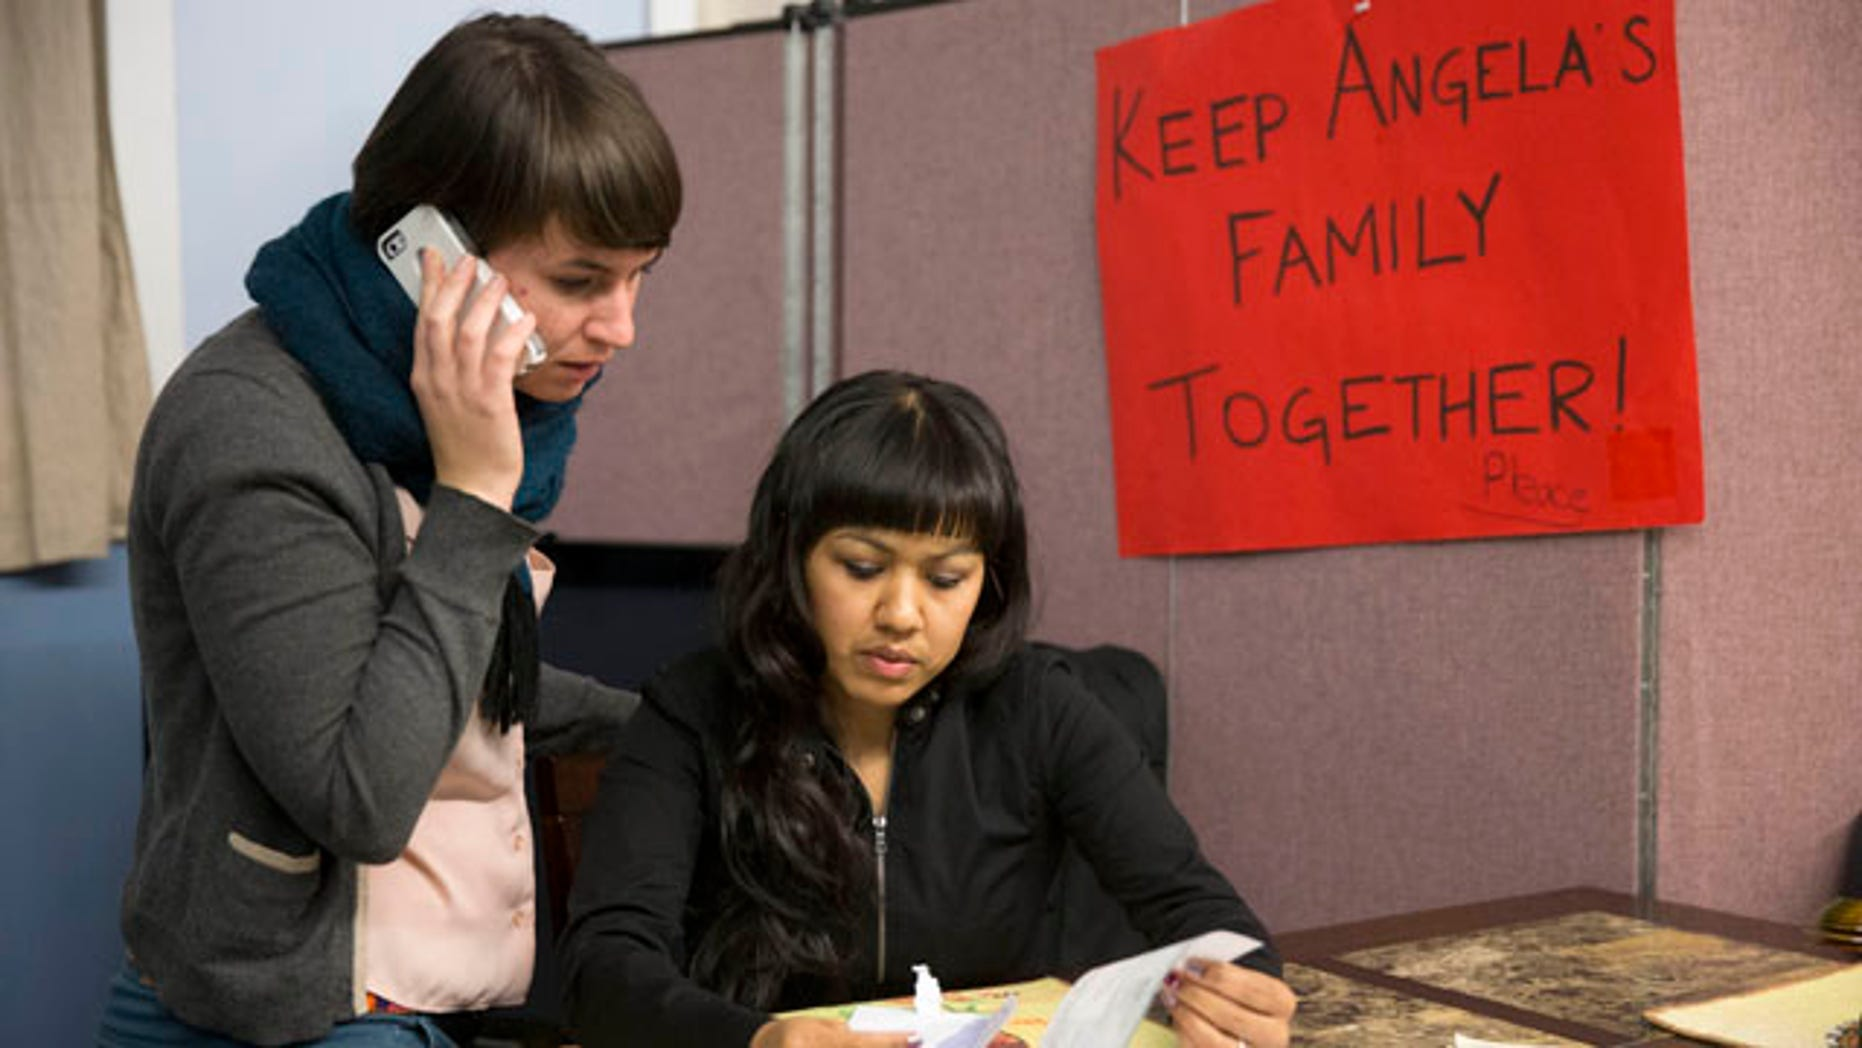 Dec. 8, 2014: Angela Navarro, right, who has been living in the U.S. with her American-born children despite a deportation order issued 10 years ago looks over a letter with New Sanctuary Movement community organizer Nicole Kligerman at the West Kensington Ministry church in Philadelphia. (AP Photo/Matt Rourke)